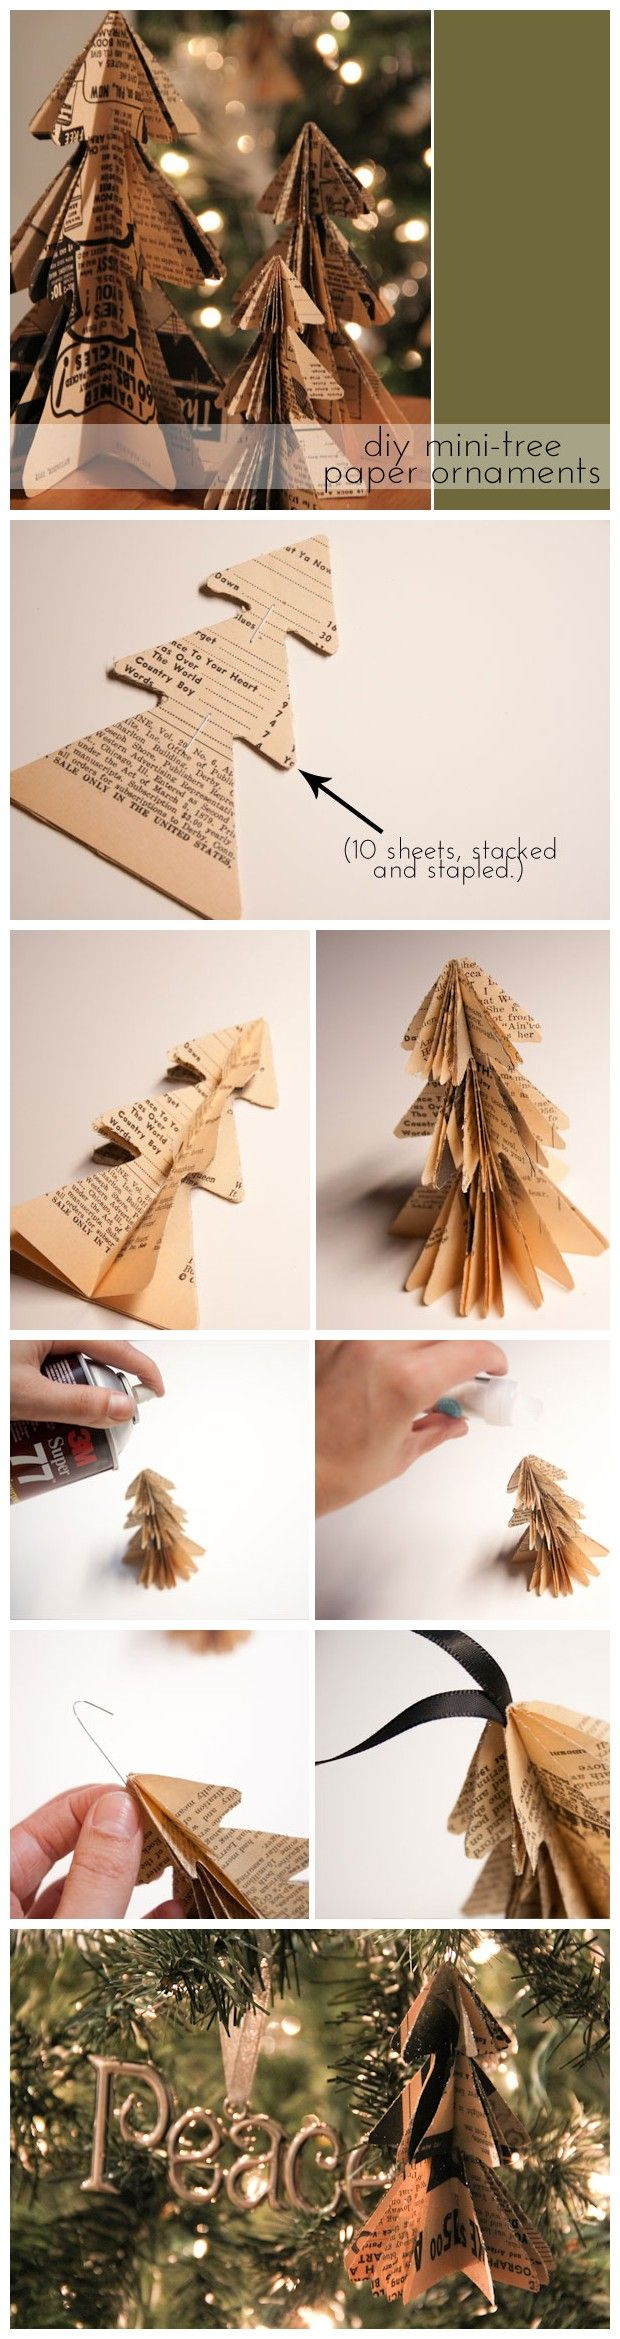 recycled book ornaments